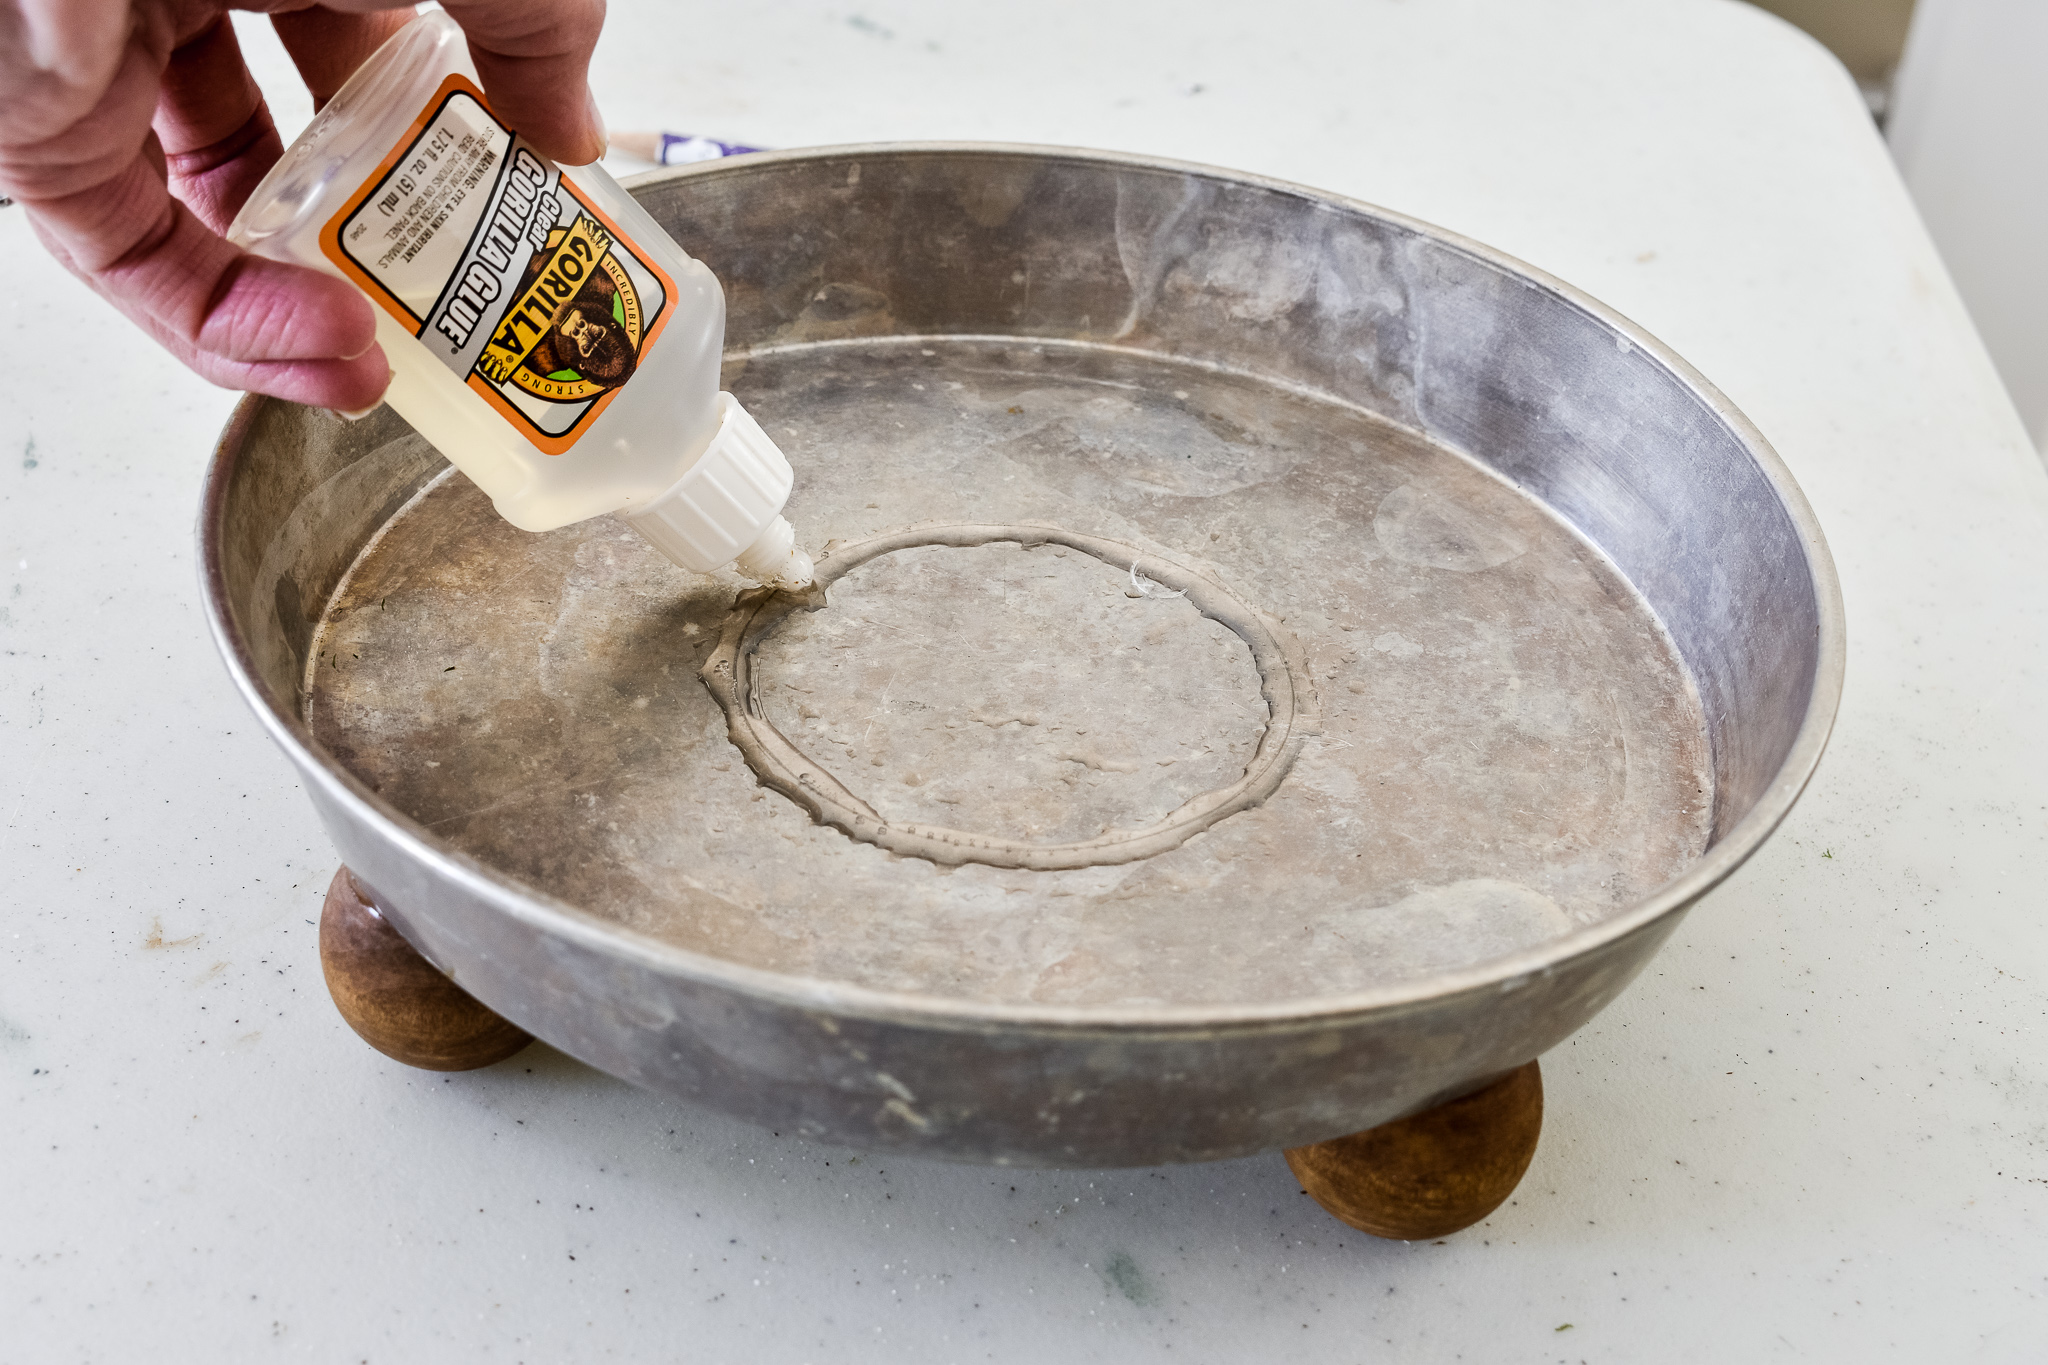 applying glue to the center of a cake pan